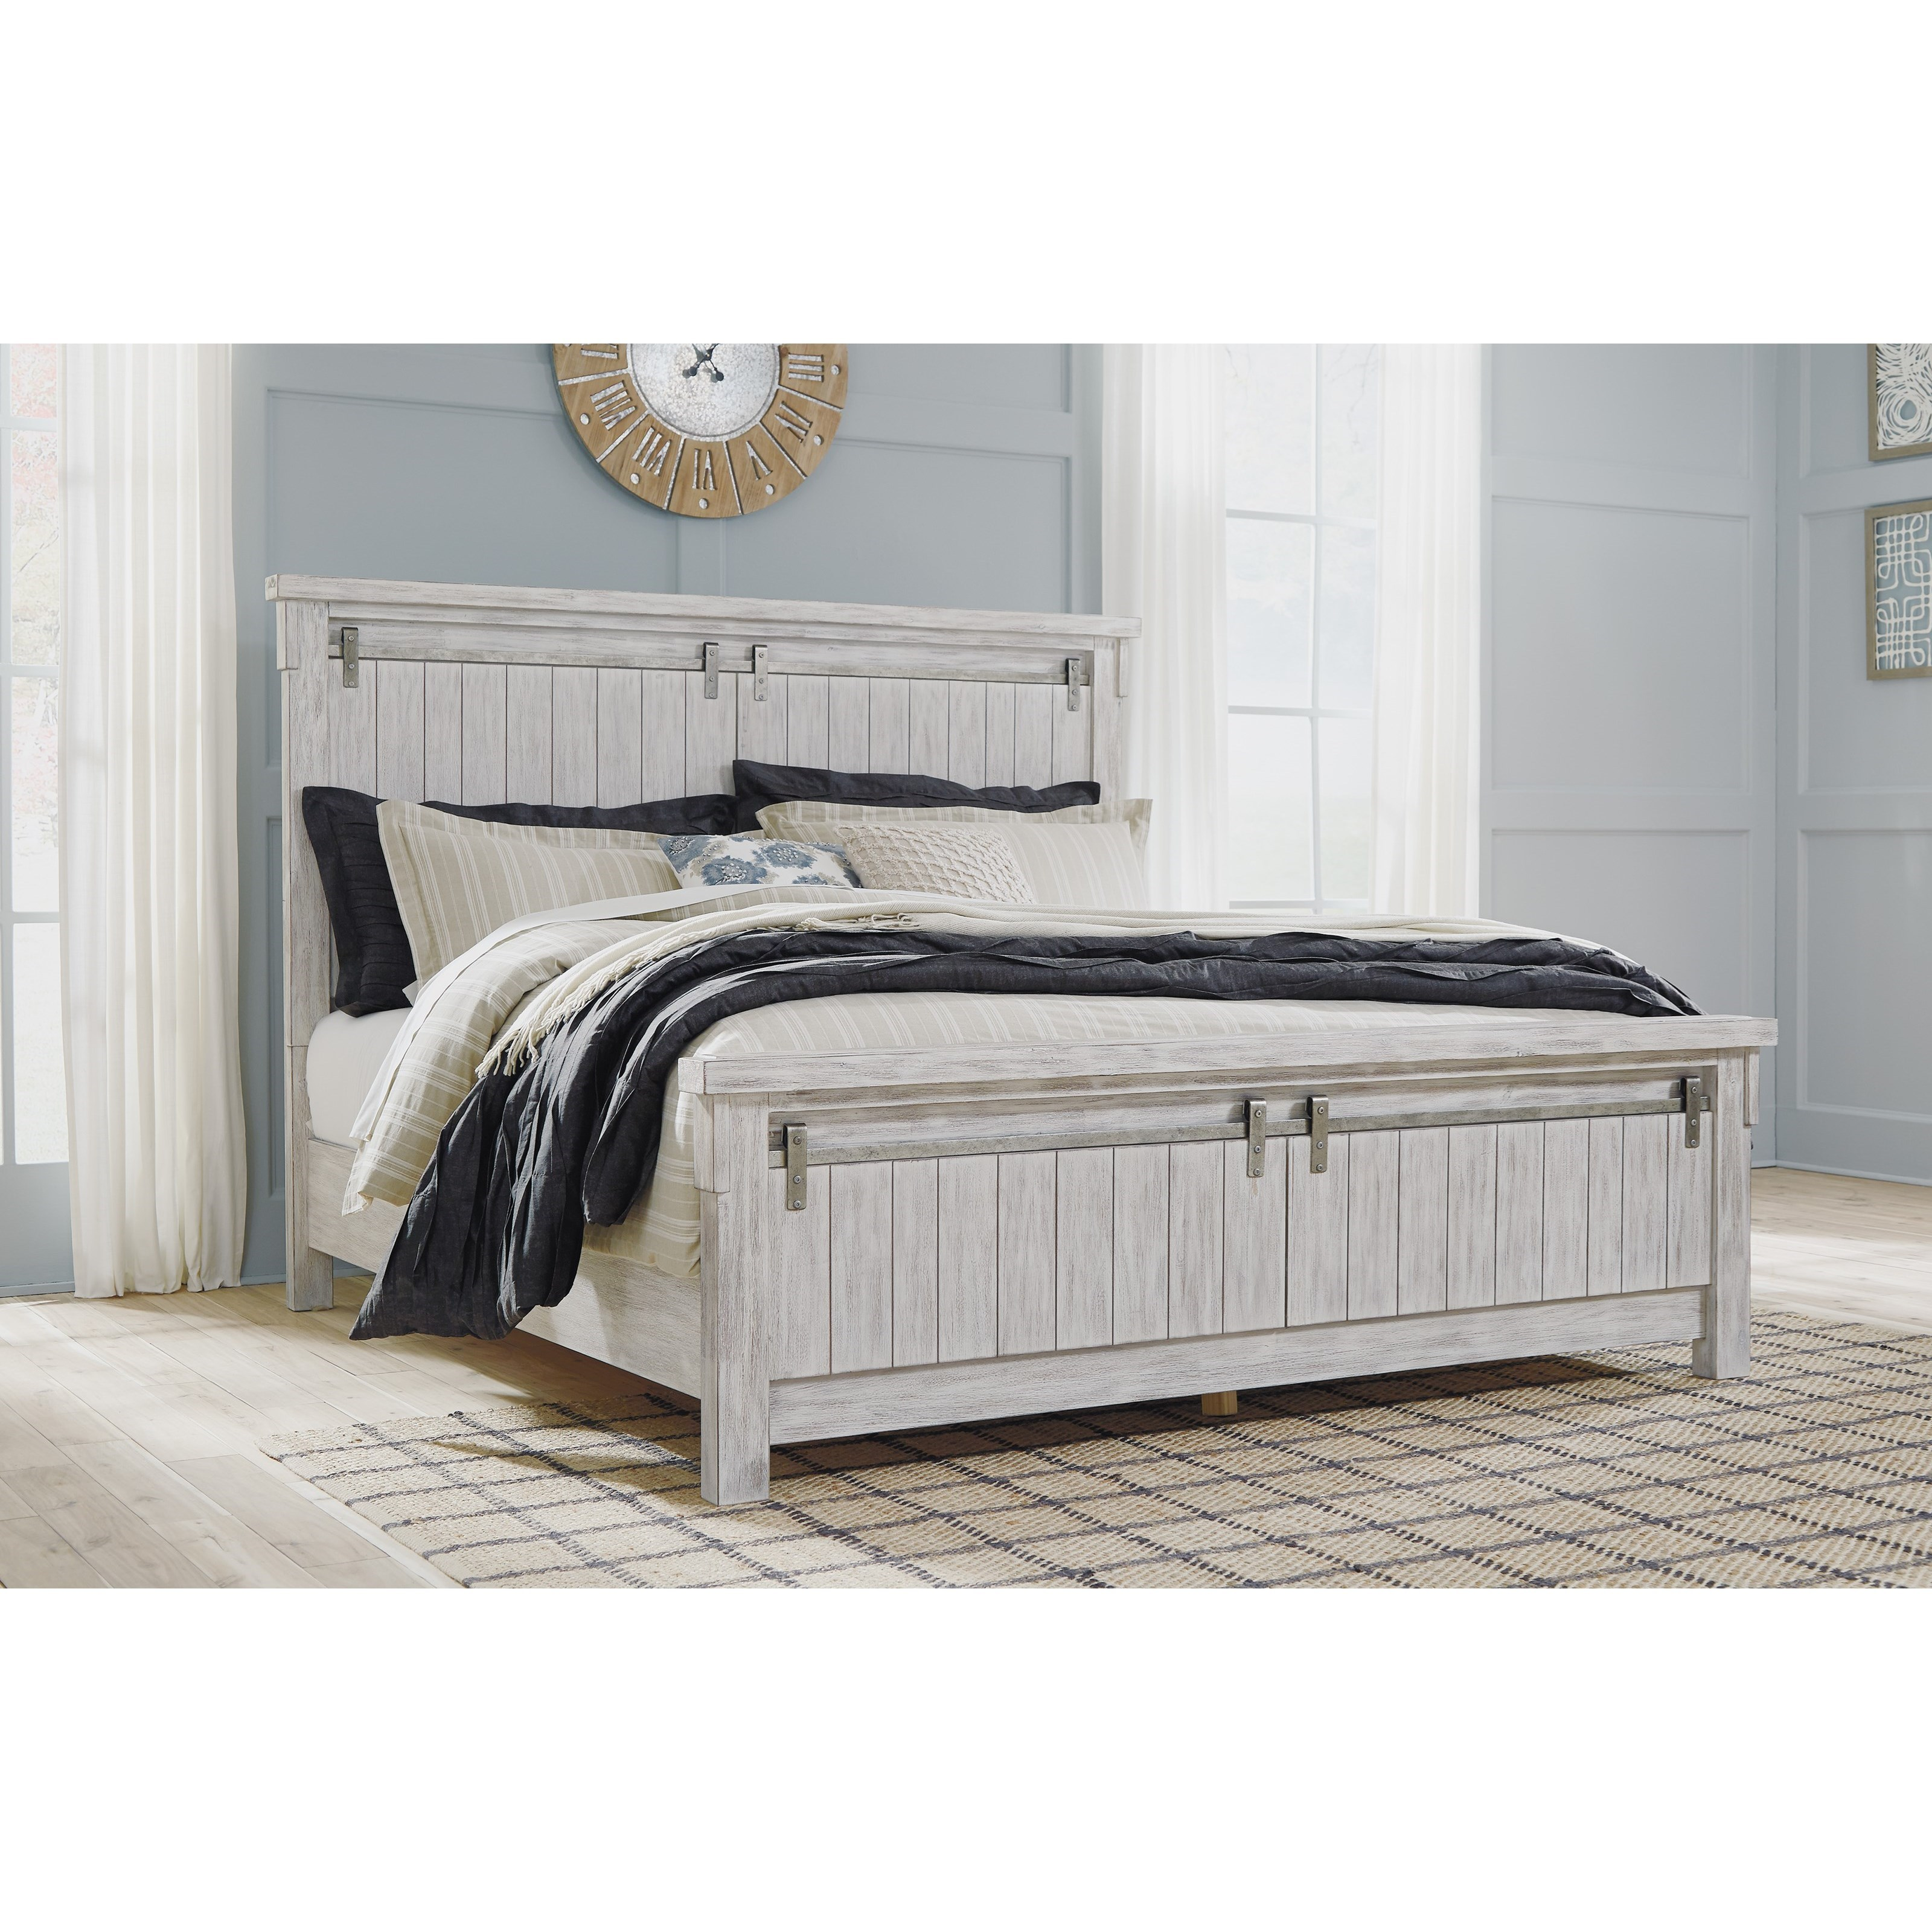 Brashland Queen Panel Bed by Signature Design by Ashley at Sparks HomeStore